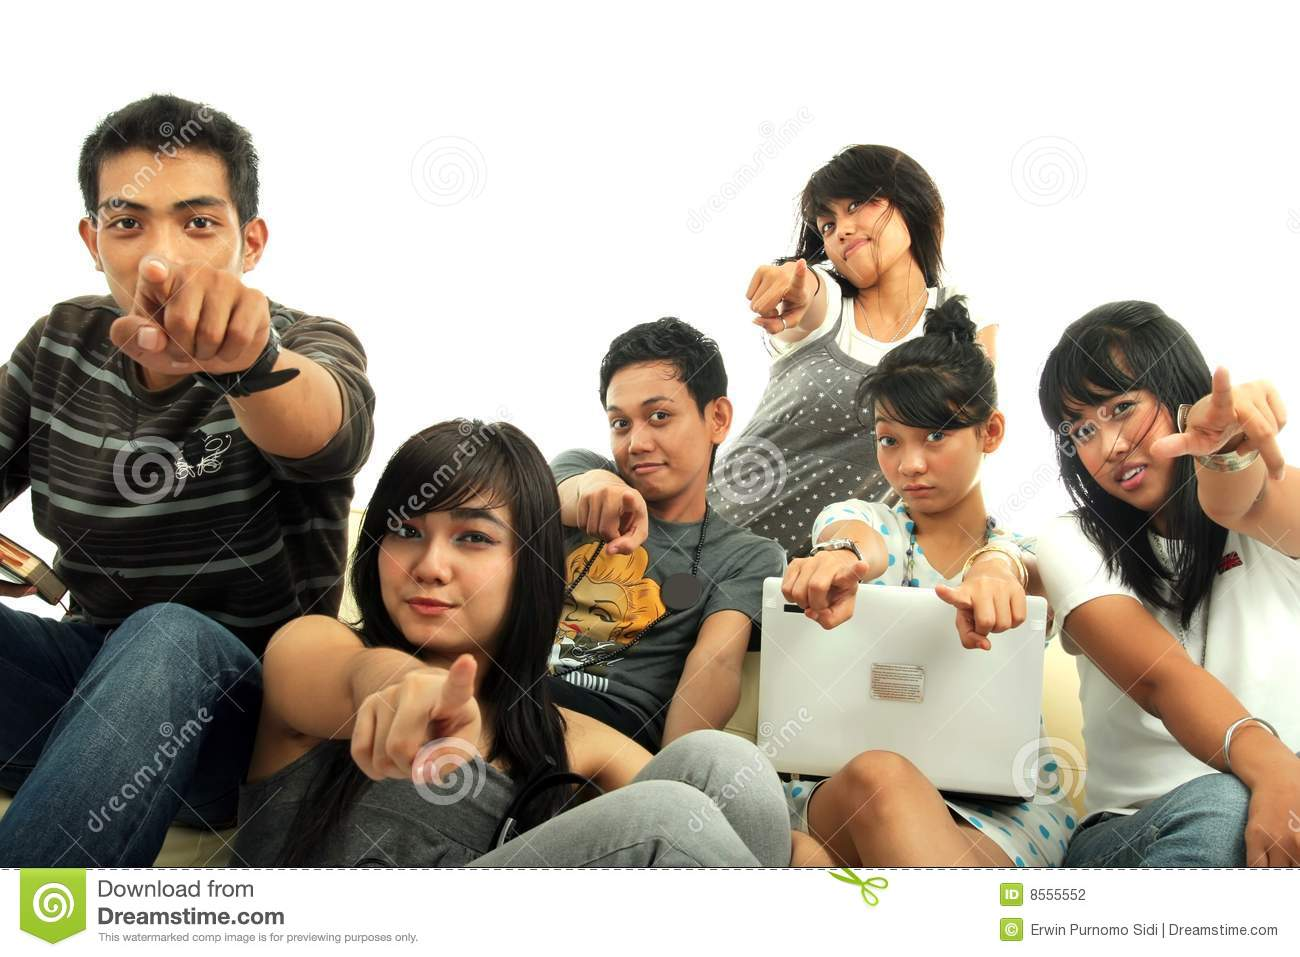 Group of young people on sofa